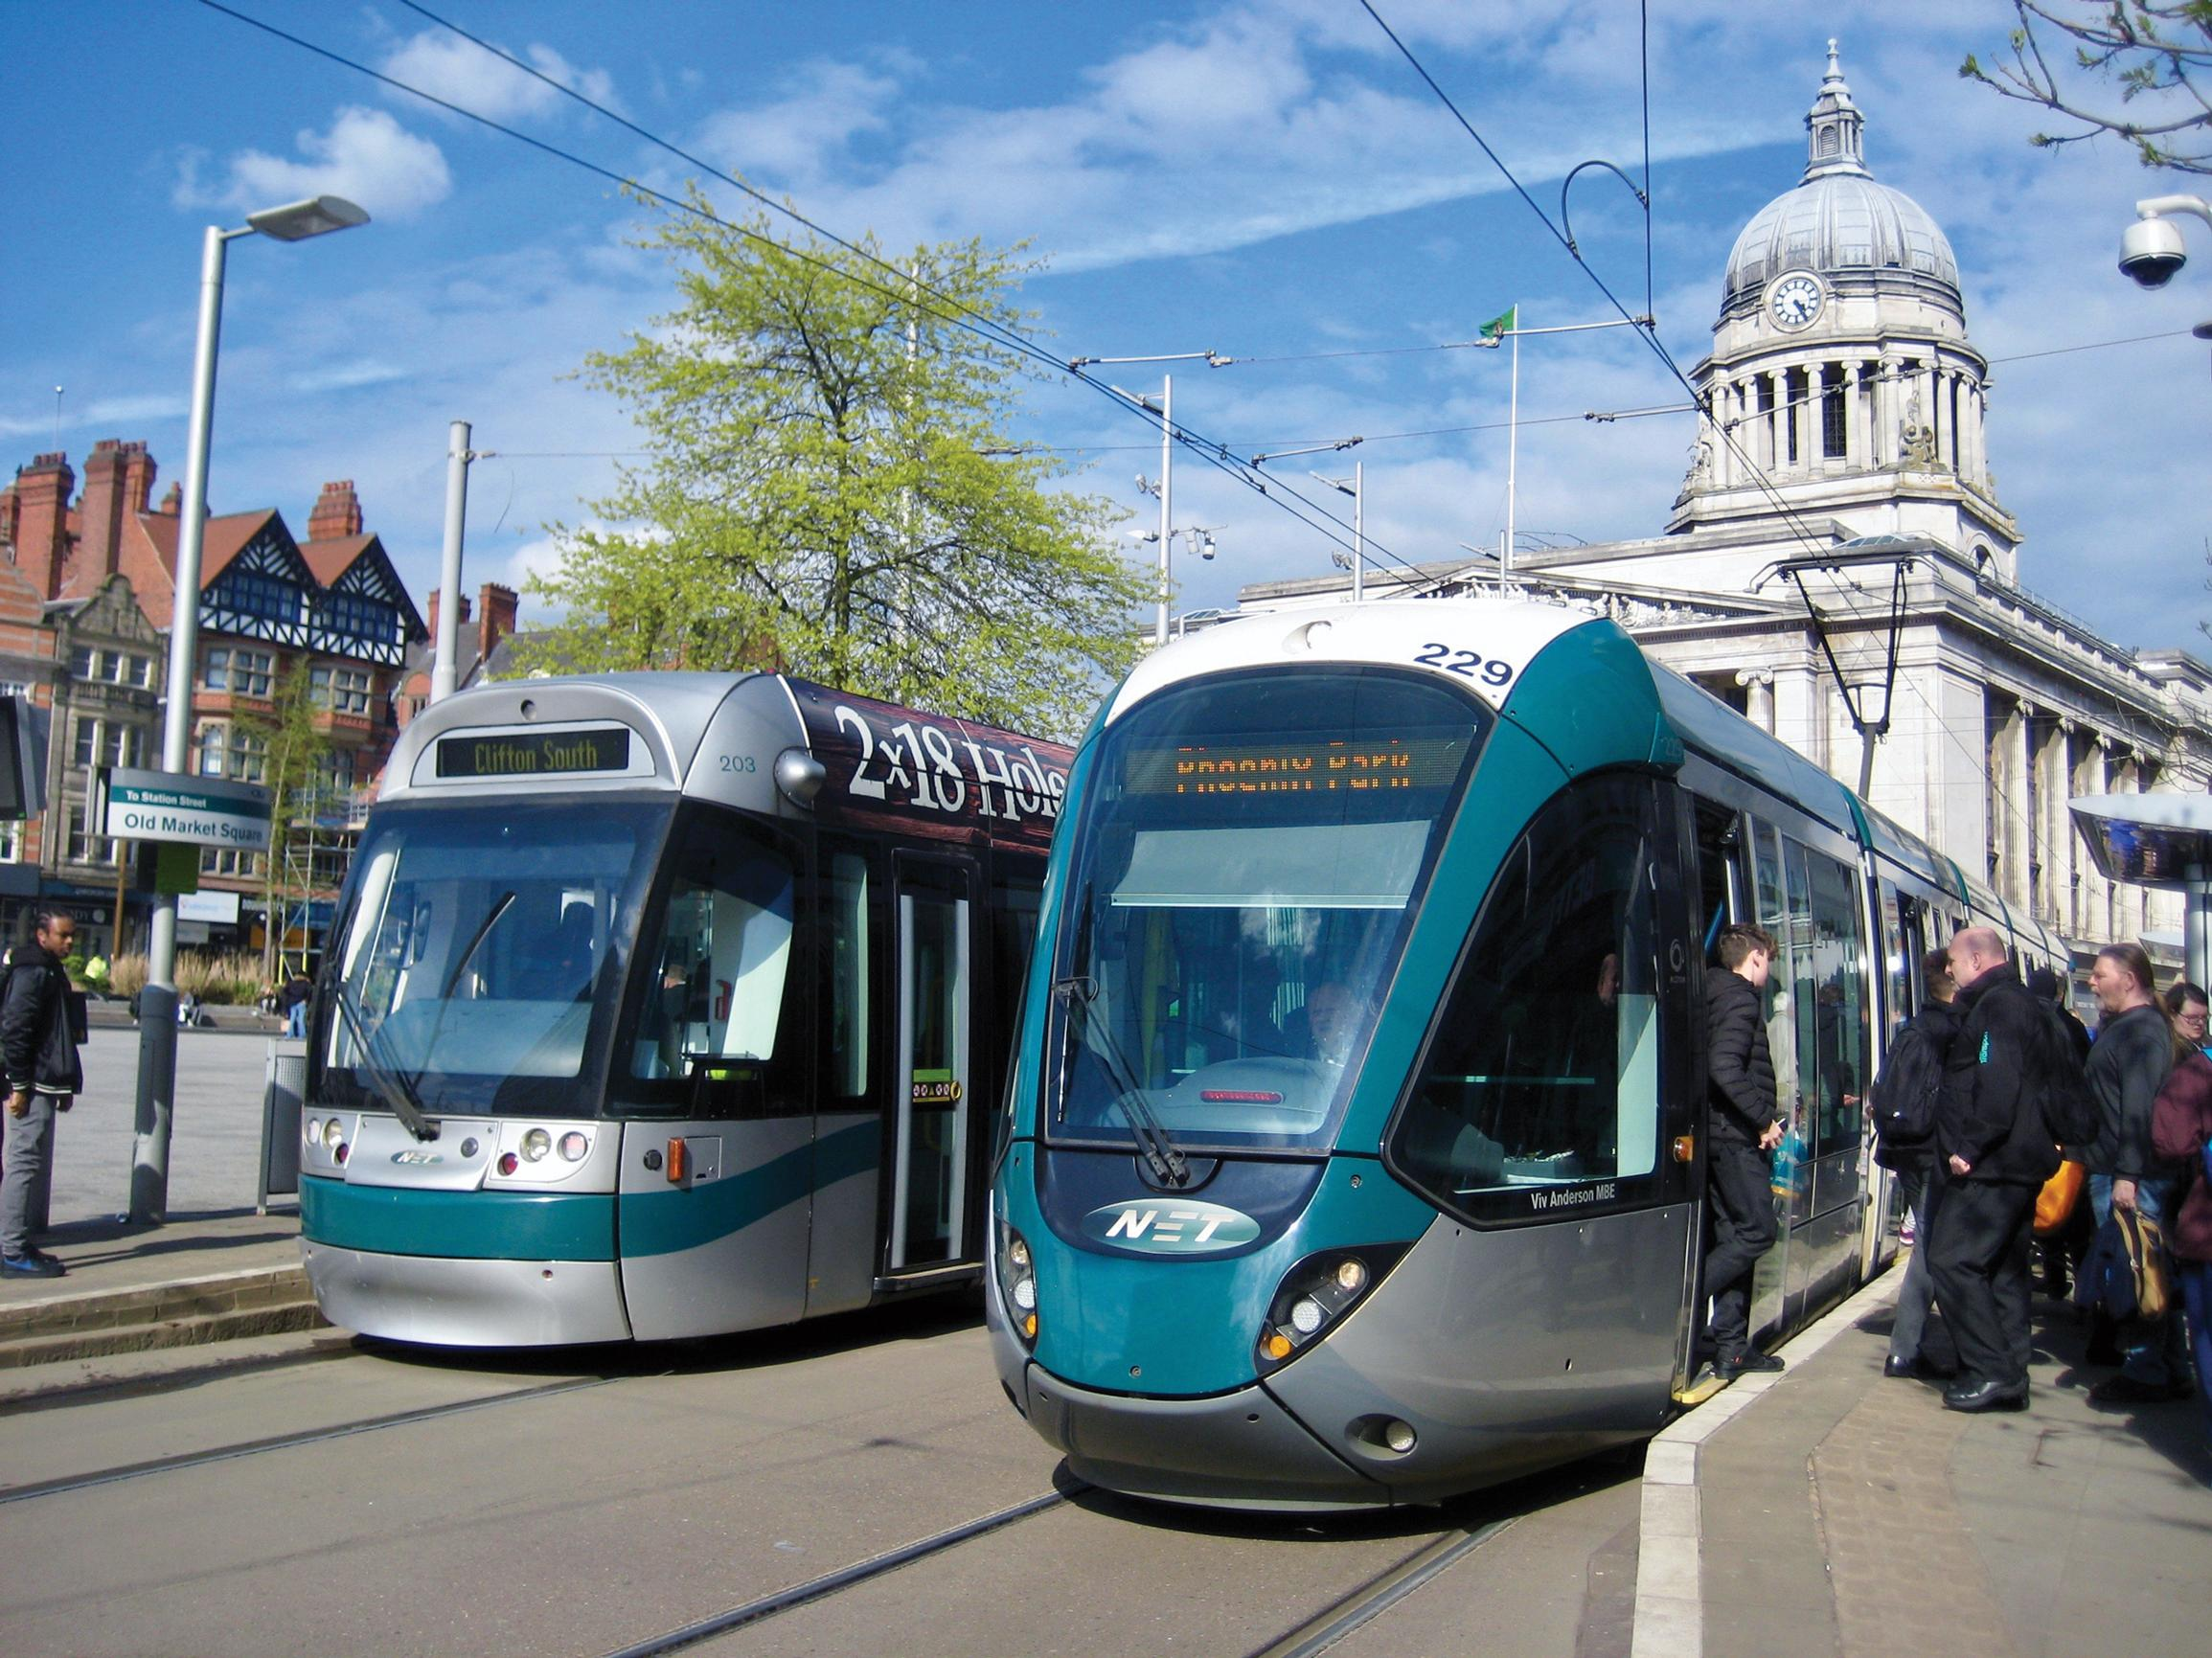 Spending on urban transport should increase, 